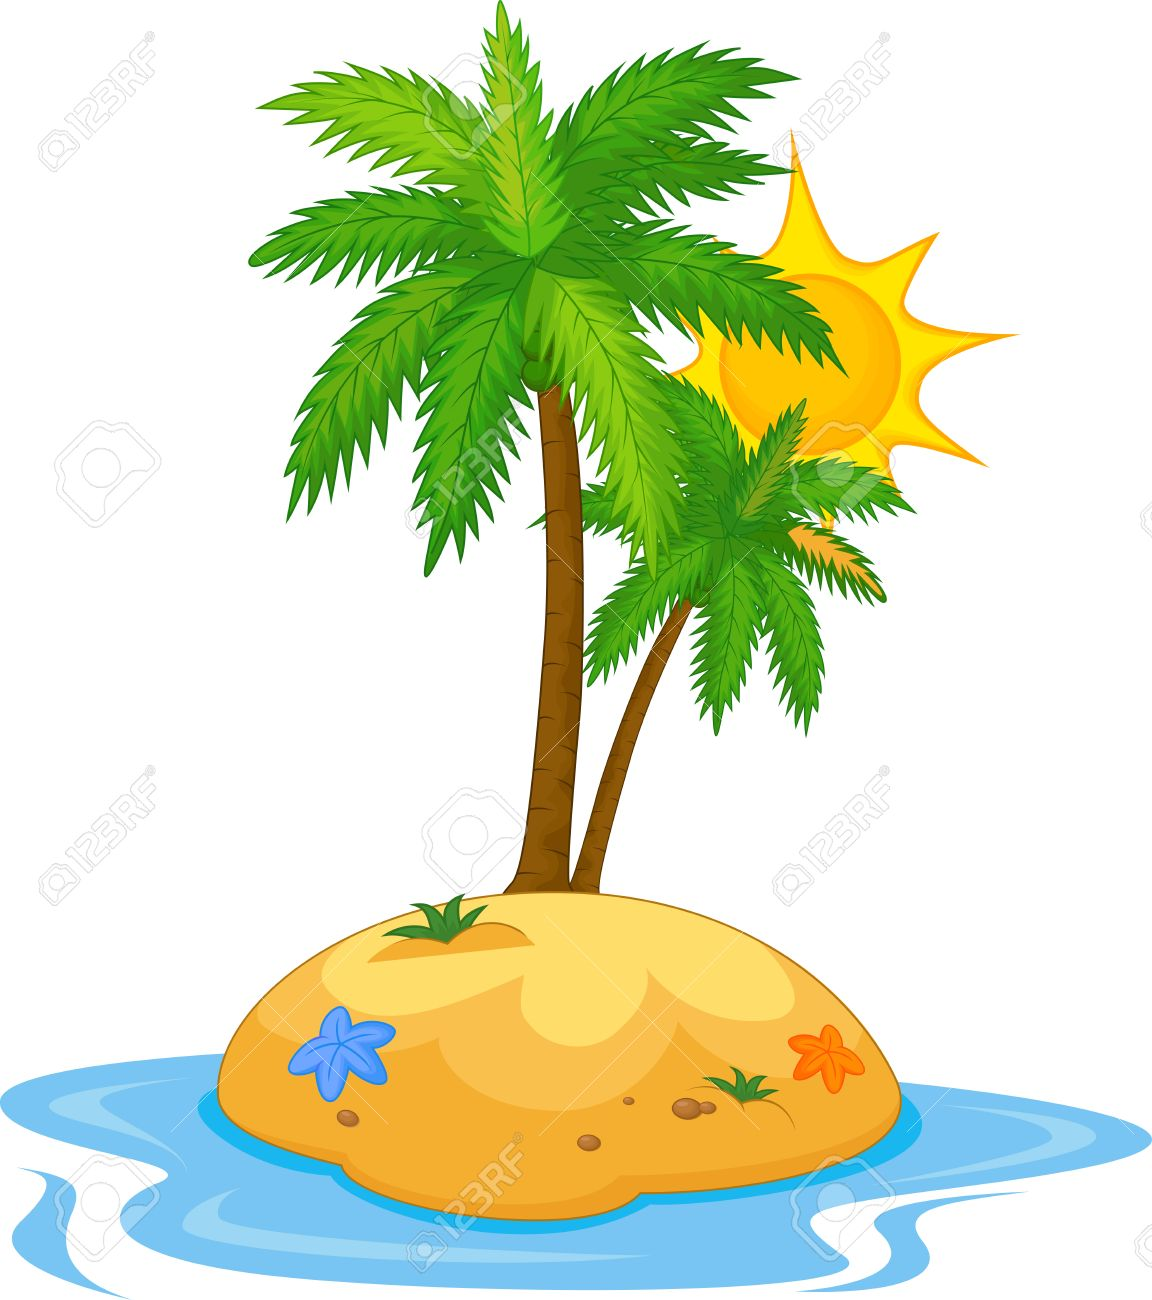 tropical island cartoon royalty free cliparts vectors and stock rh 123rf com tropical island clipart black and white tropical island clipart black and white